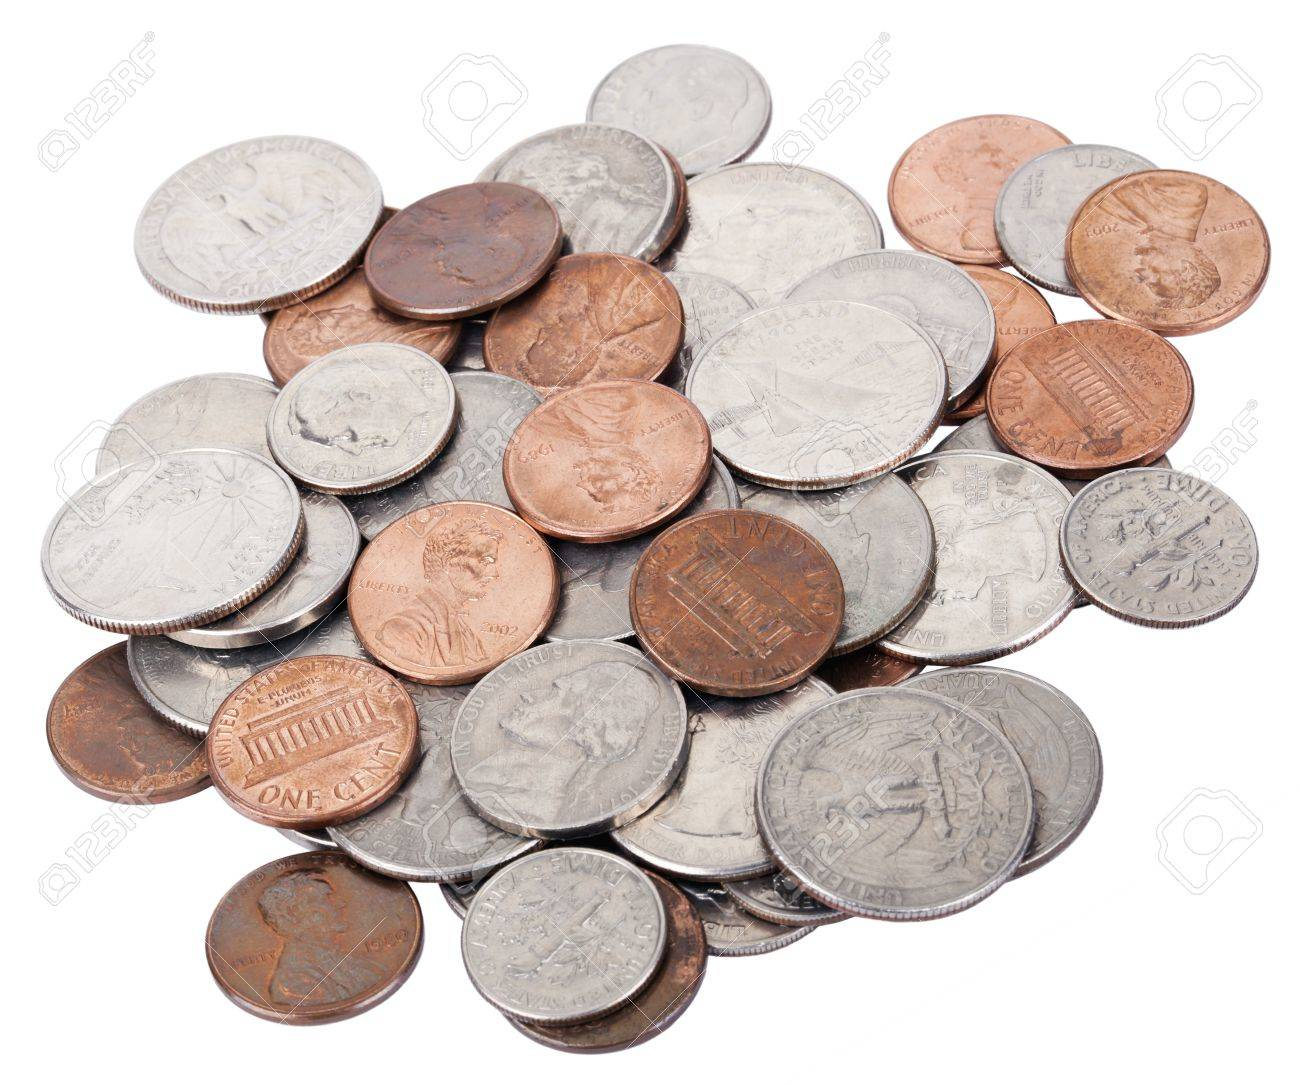 A pile of various American coins (quarters, dimes, nickels, pennies)..